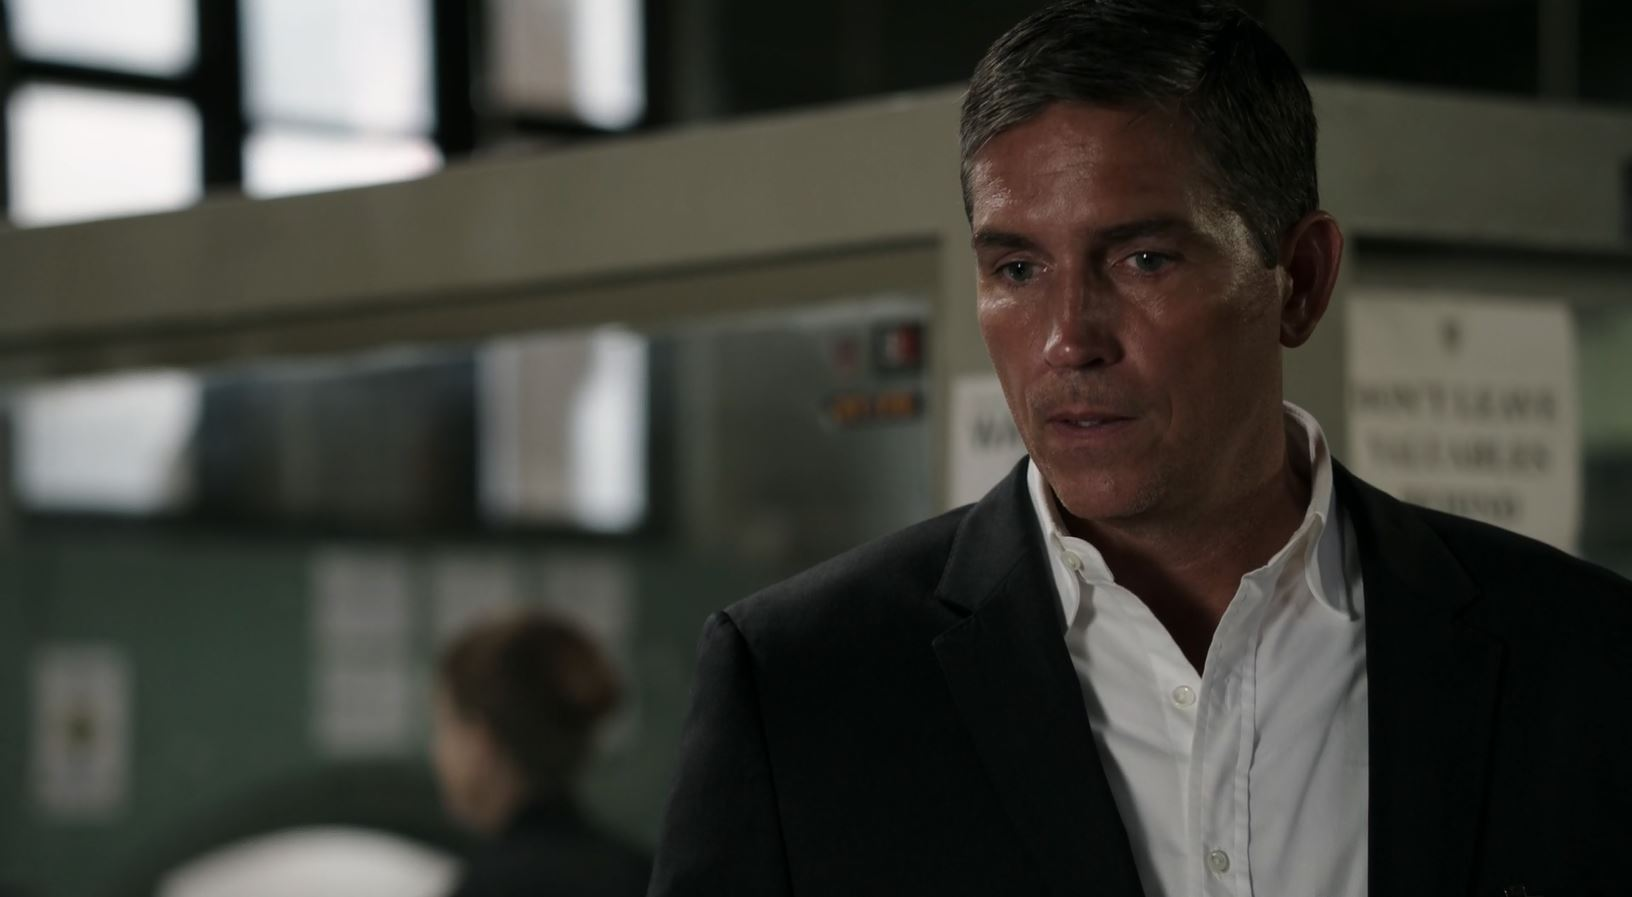 Jim Caviezel as Reese. Person Of Interest S5Ep01 B.S.O.D. Review